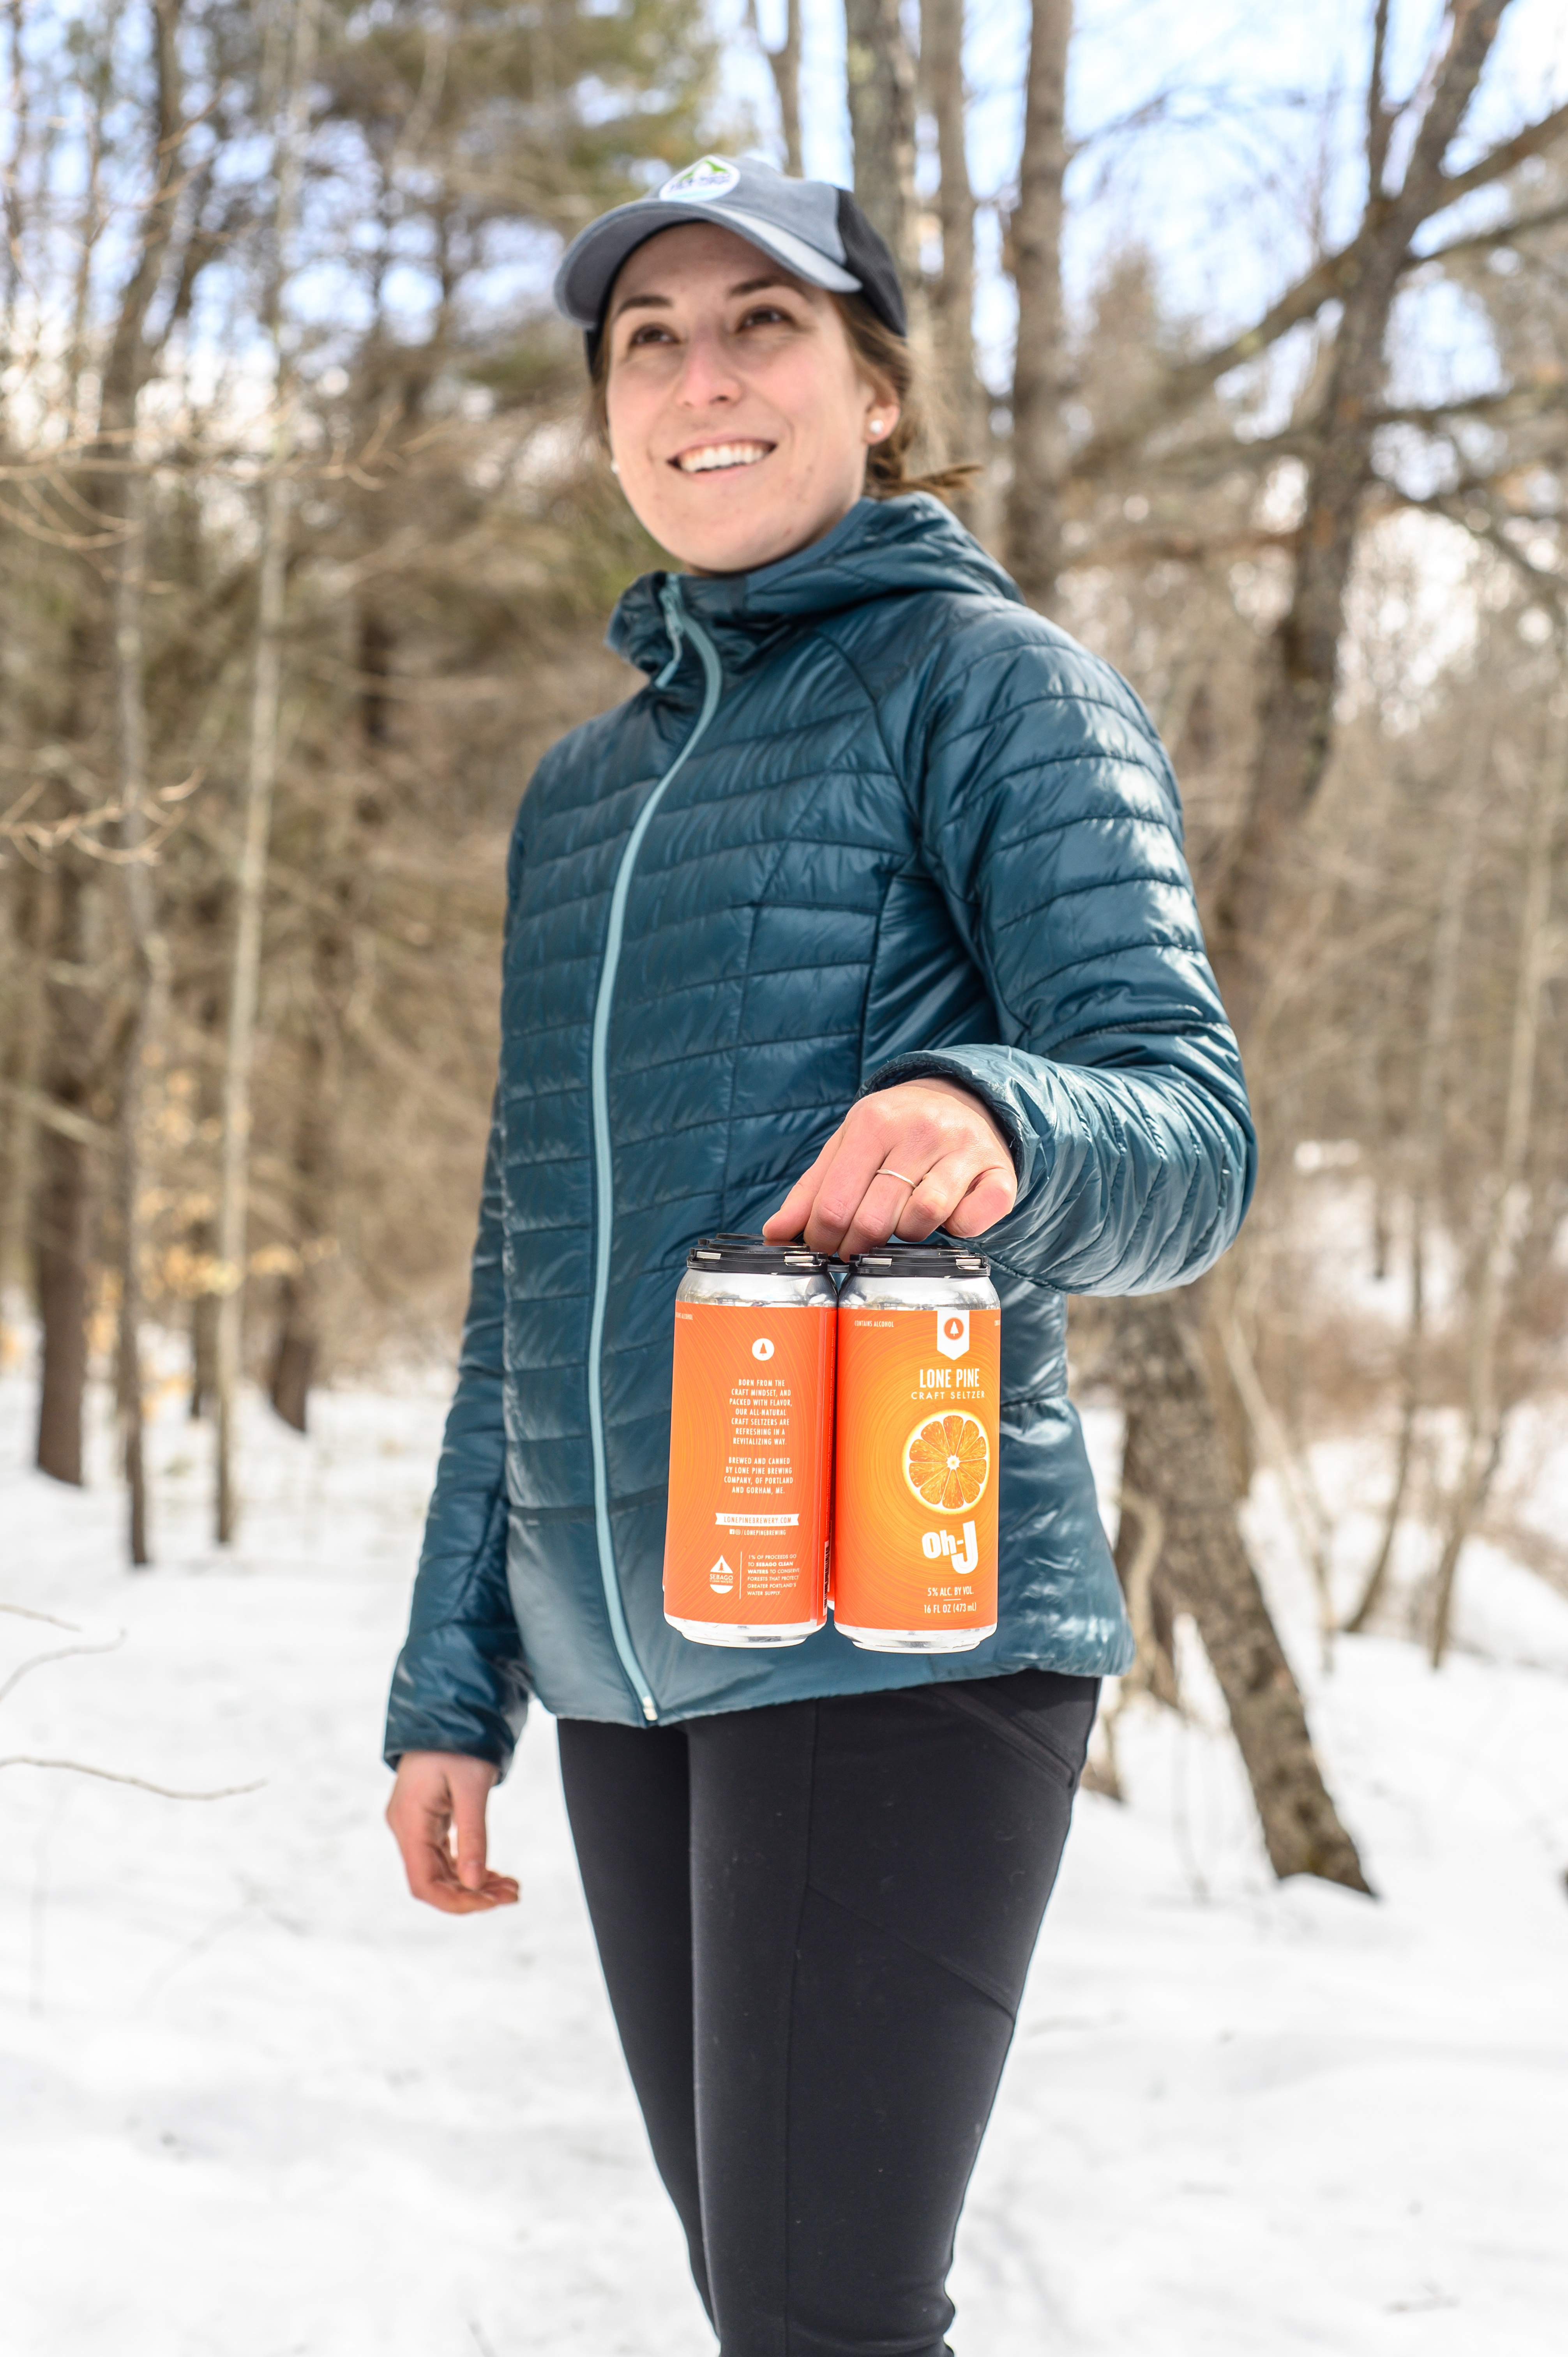 Lone Pine Brewery is one model Portland-area business that has donated to support Sebago Clean Waters and land protection around Sebago Lake.